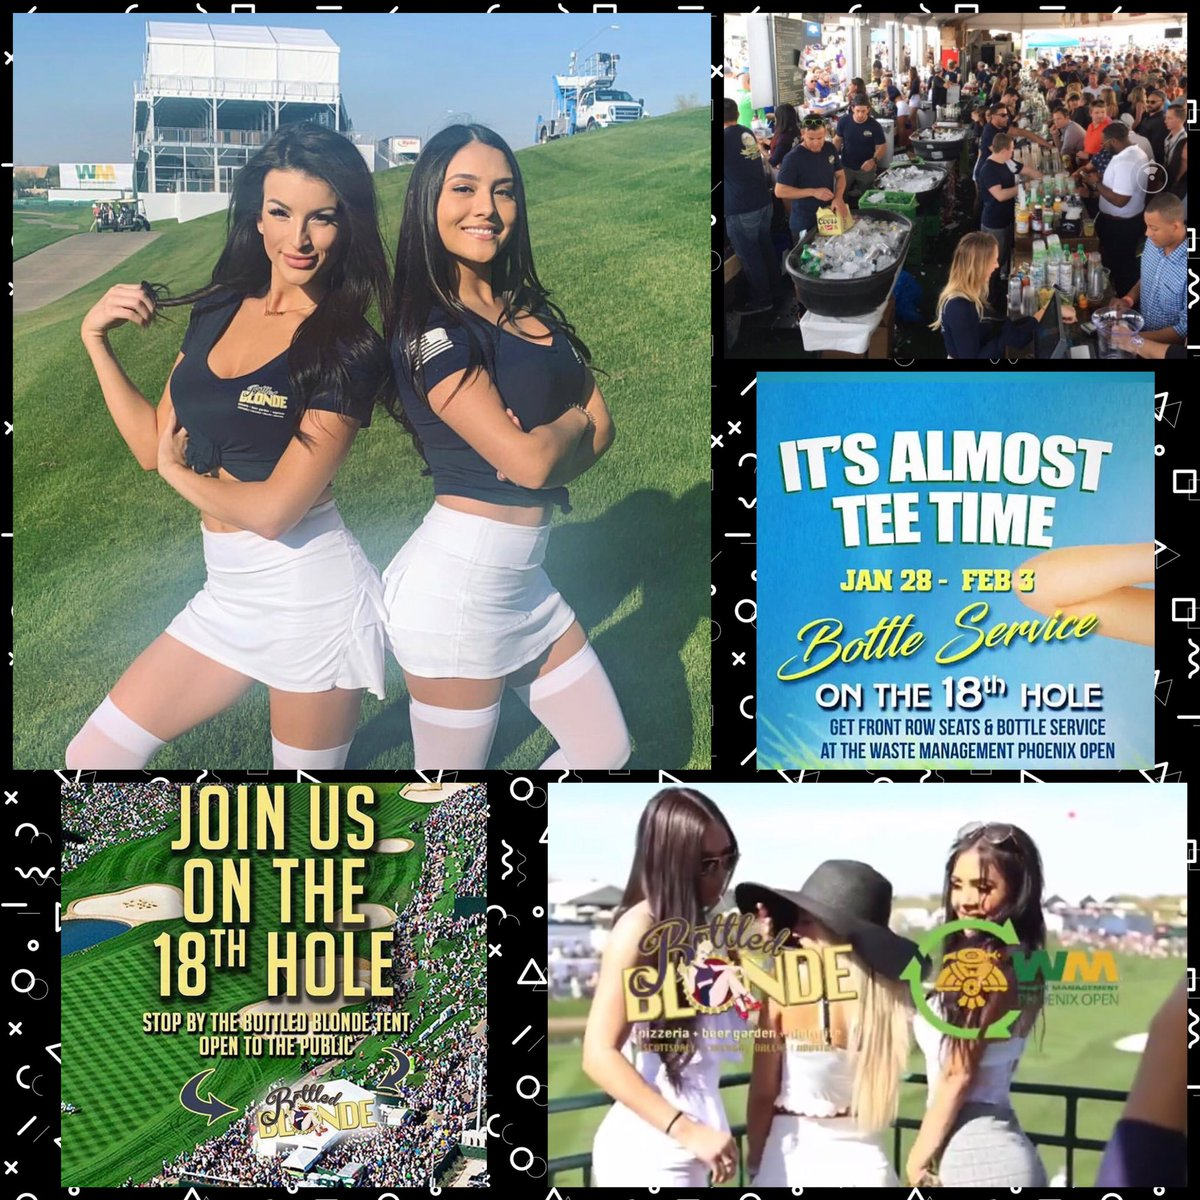 18th Hole @ WMO ~ Bottled Blonde & All Major Events That Week ~ Gem Ray at 480.772.7613 ~ http://ScottsdaleNights.com  #wmphoenixopen #scottsdalenights  @GemRayMedia @ScottsdaleNites